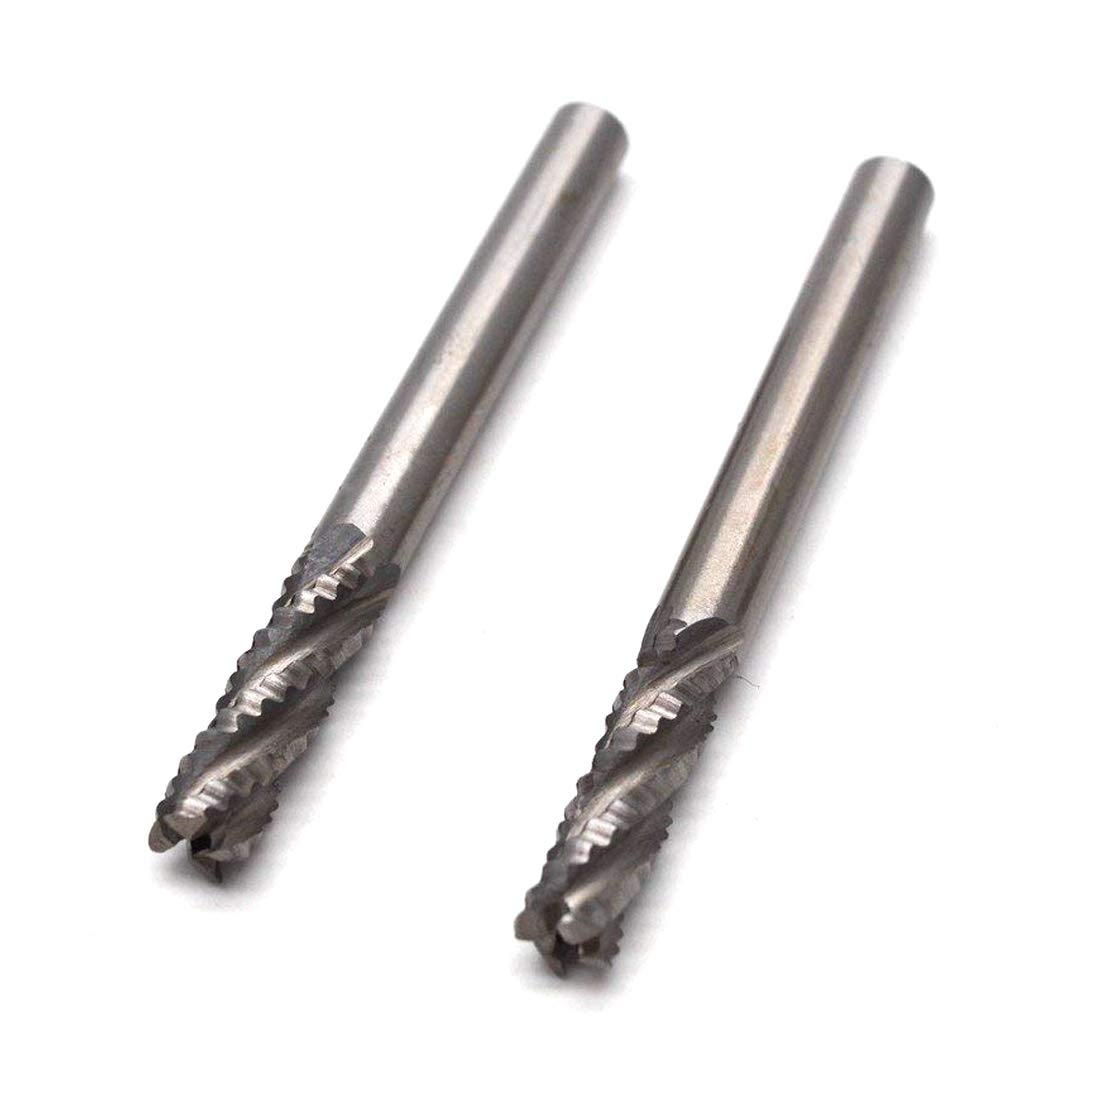 Sydien 2pcs HSS 6mm//0.24 Inch Dia Roughing End Mill 4 Flute,Coarse Tooth,1//4Shank